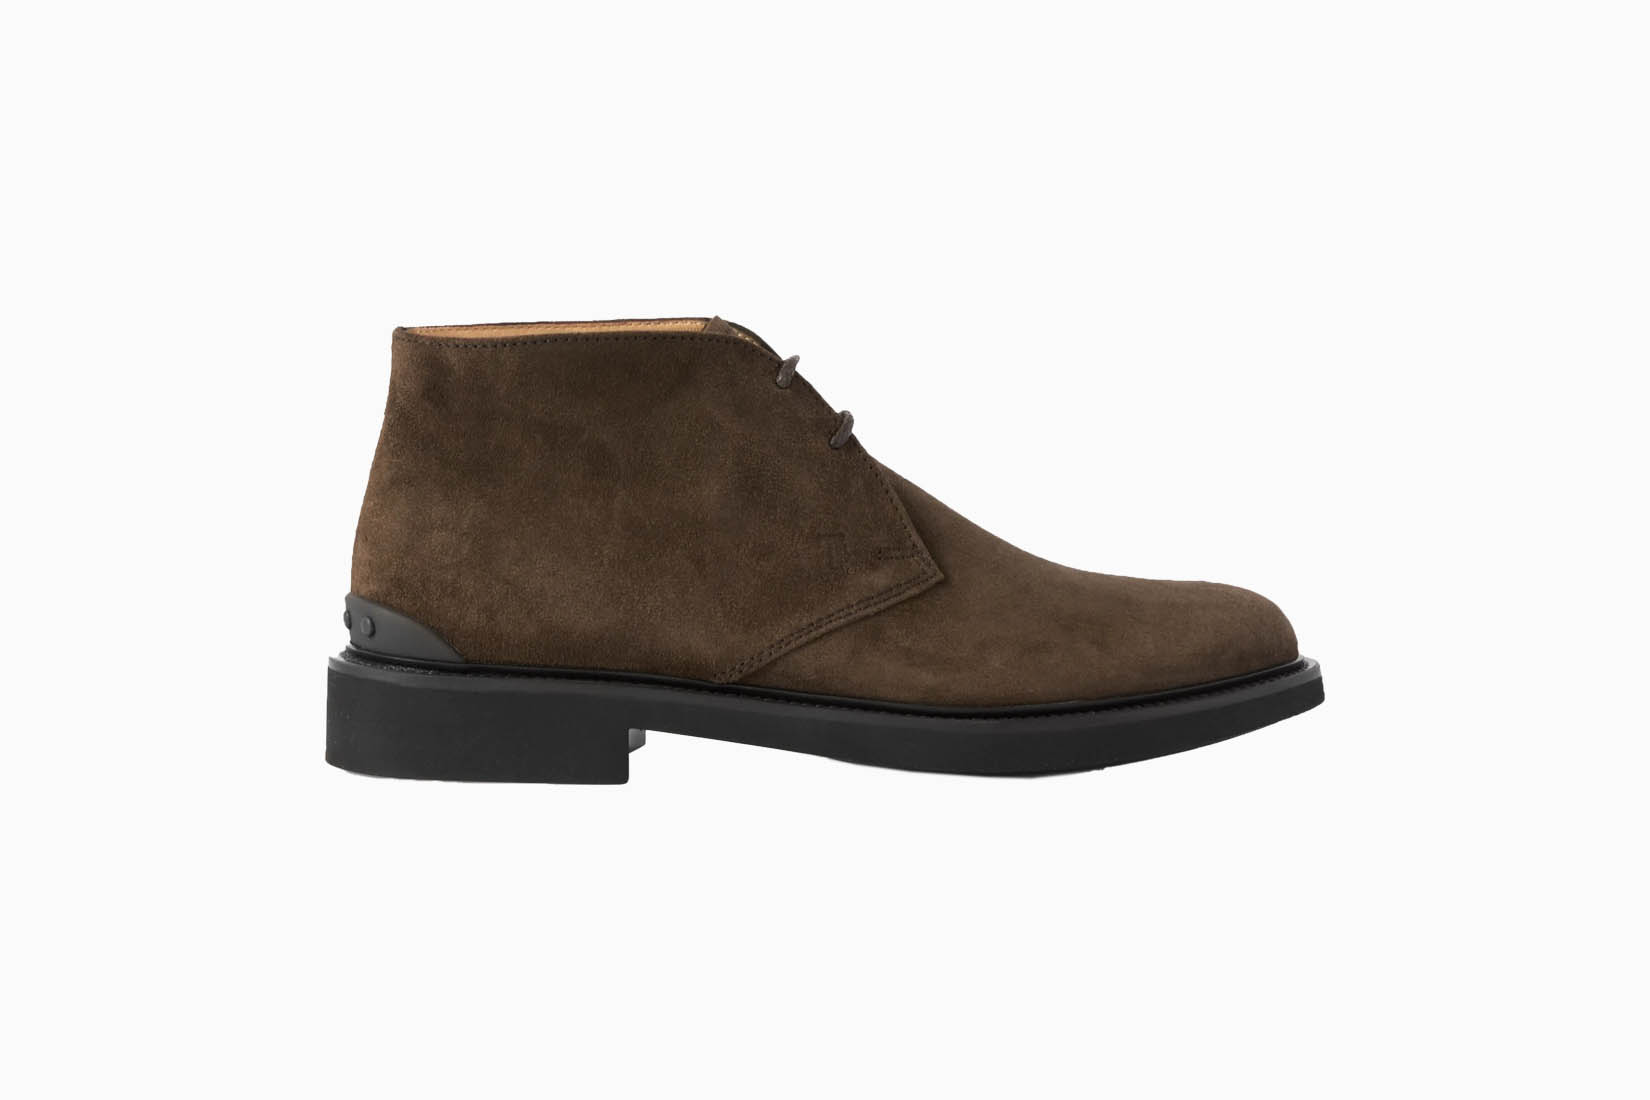 best casual shoes men tods gommino chukka boot review Luxe Digital